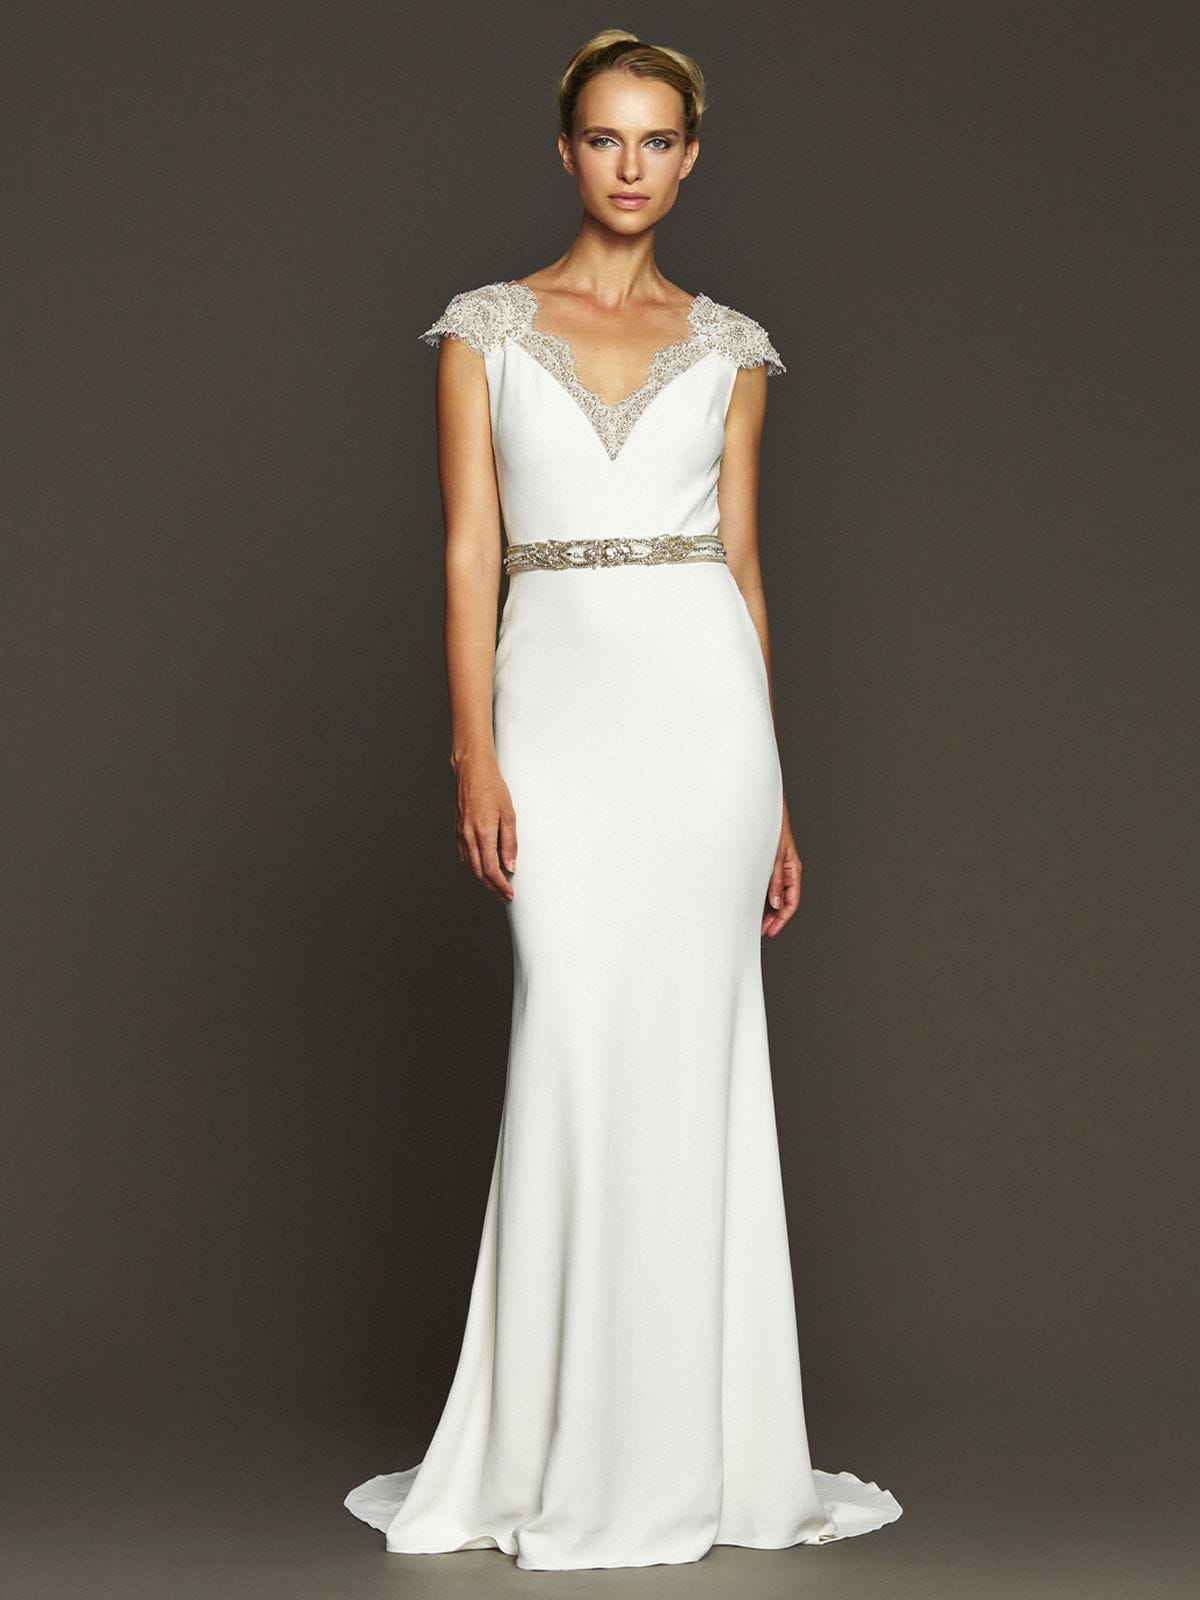 Badgley Mischka Fonda wedding gown - Sell My Wedding Dress Online ...